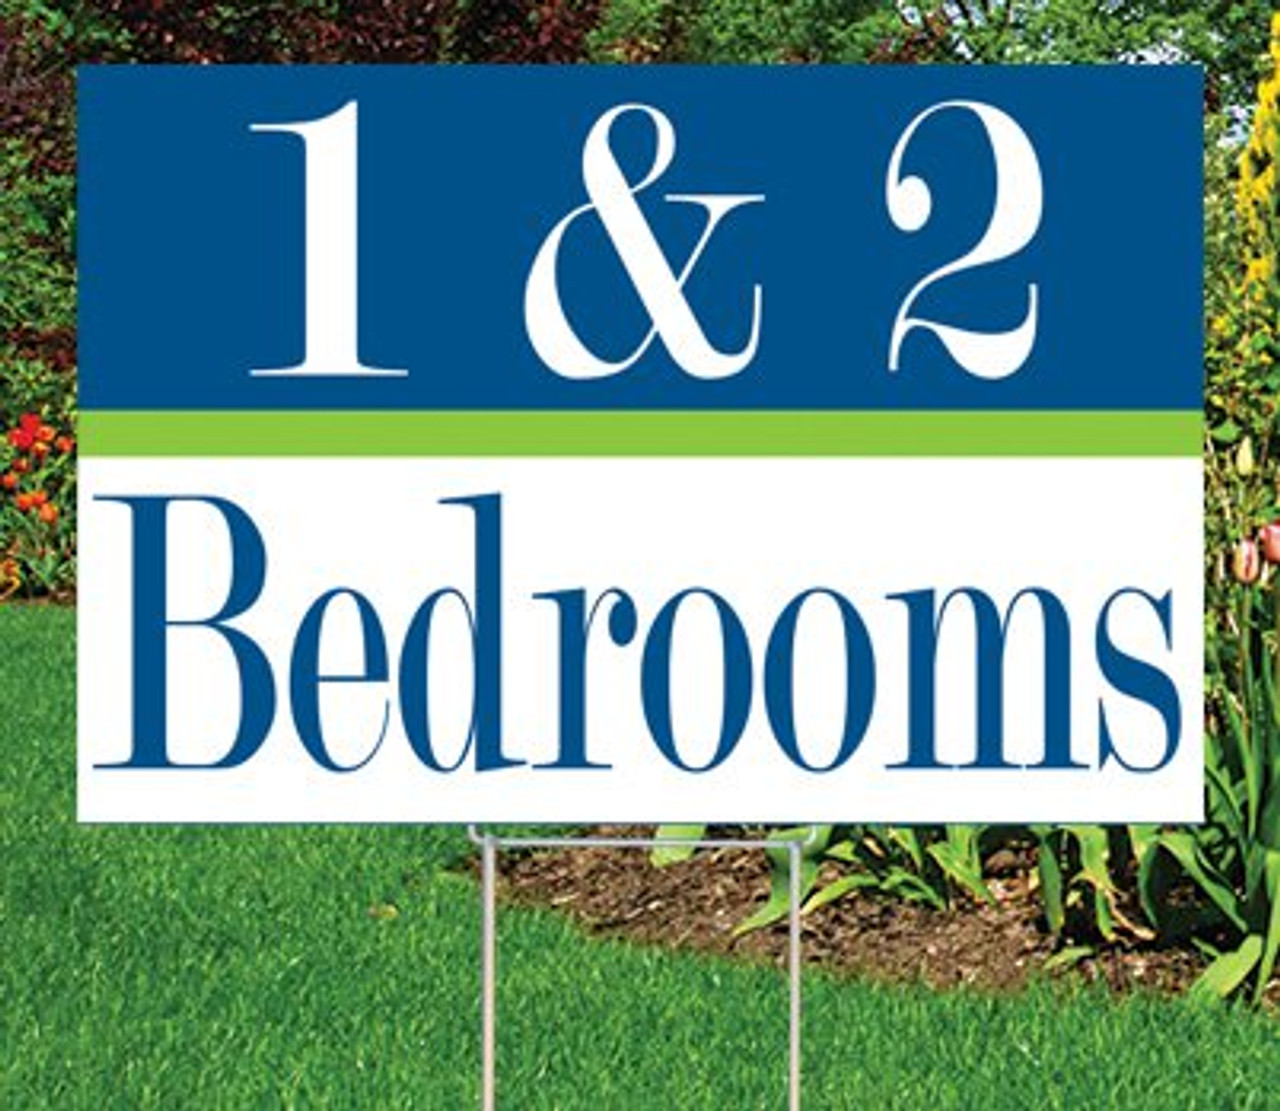 """1 & 2 Bedrooms- 12""""x 18"""" Sign- Cheerful Theme"""